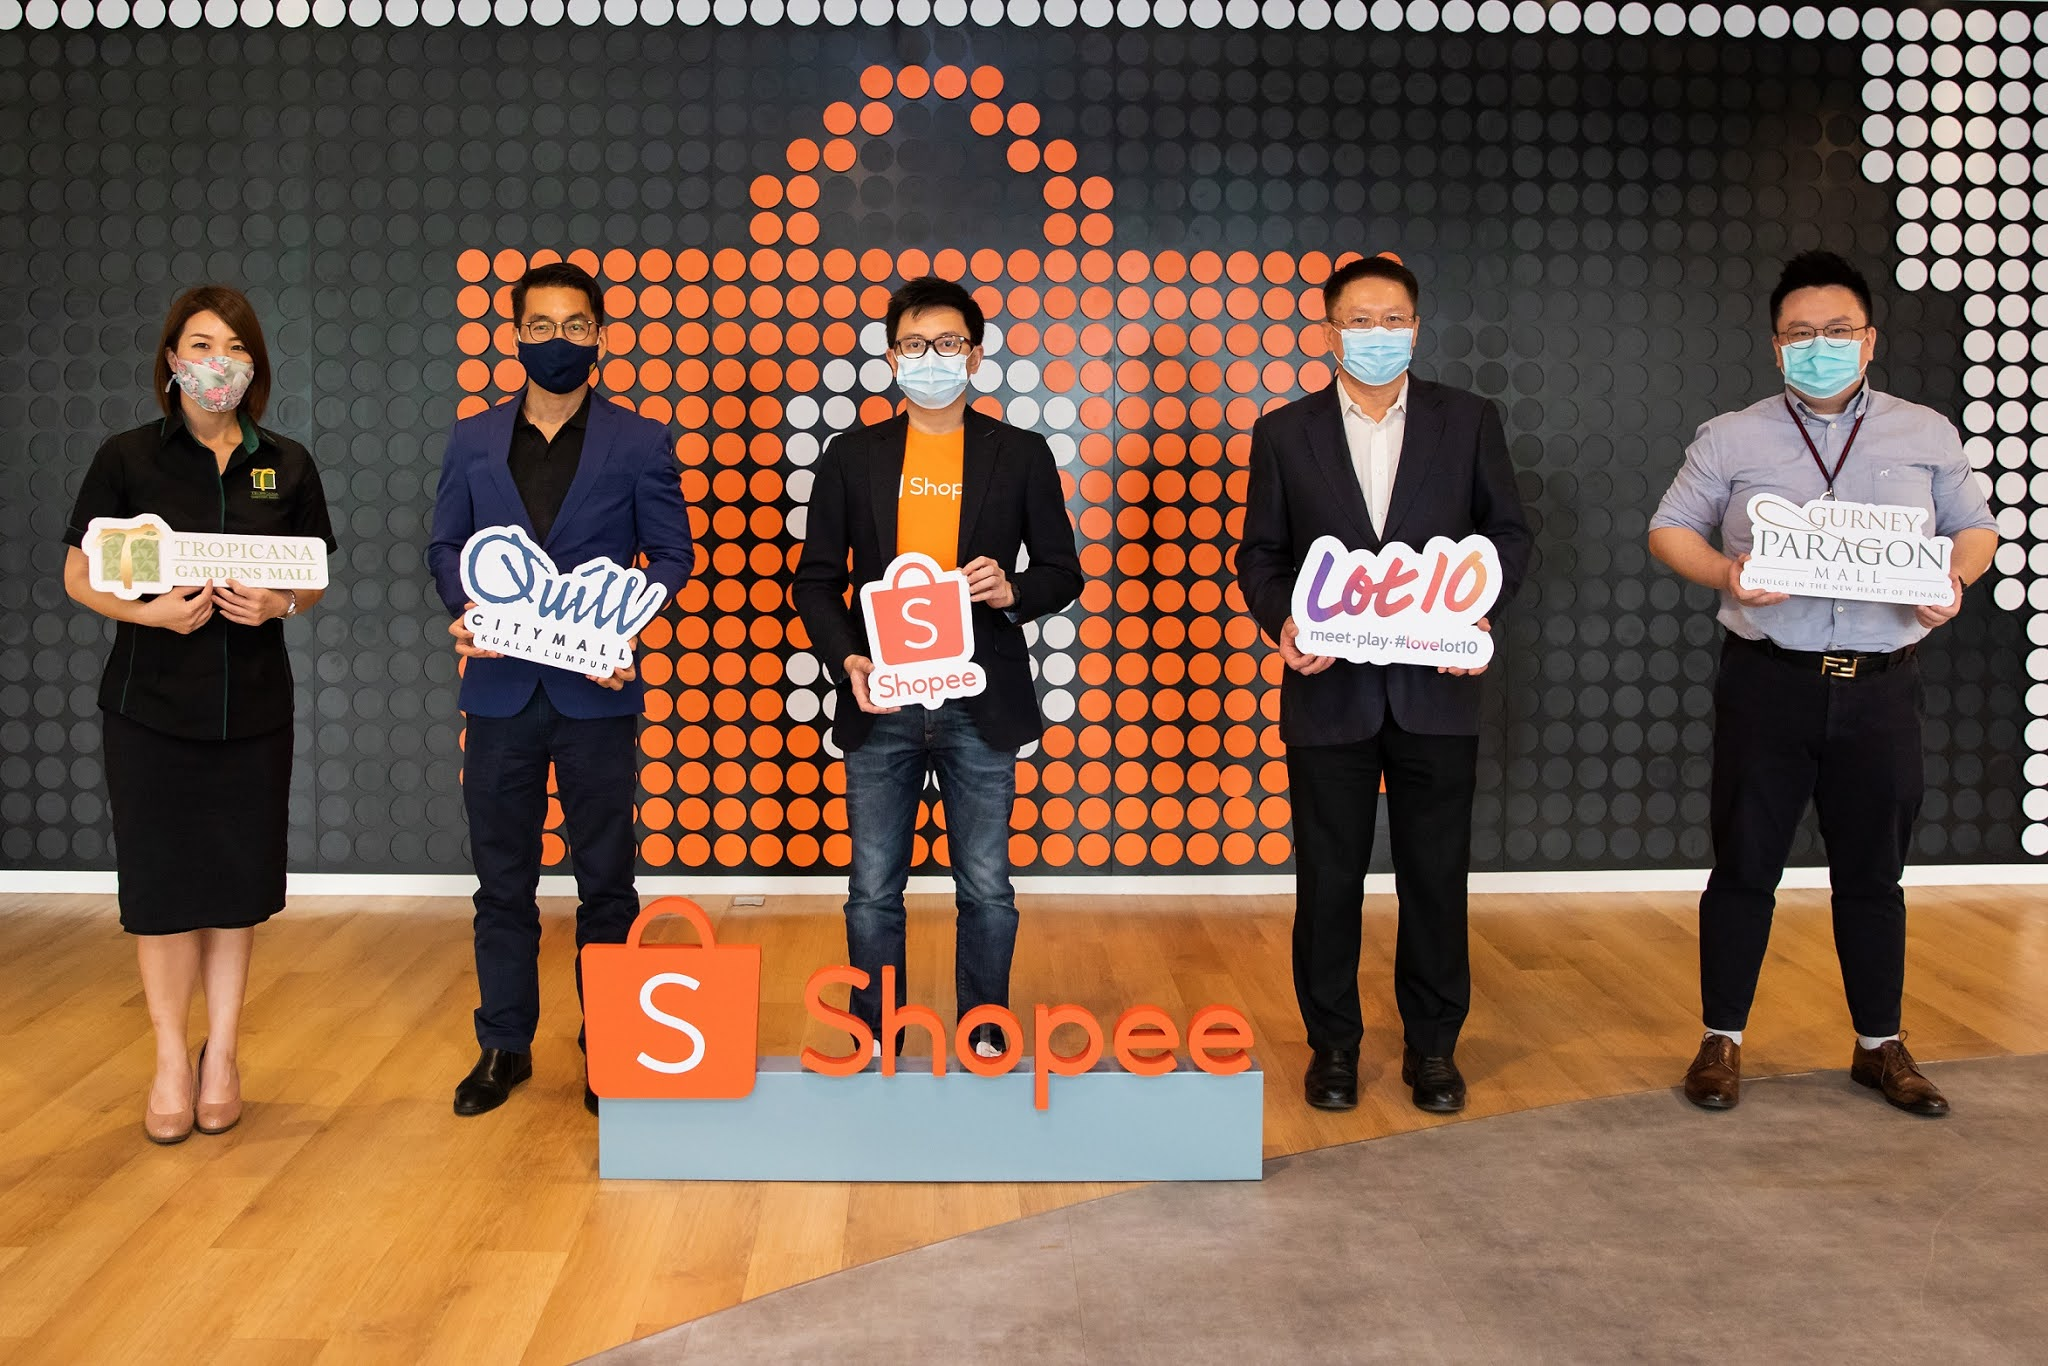 Alain Yee, Head of ShopeePay (third from left) welcomes shopping mall partners (from left) Wendy Wong Siew Chin, General Manager, Mall Marketing of Tropicana Gardens Mall; Koong Wai Seng, Group CEO of Quill Group of Companies; Eric Eoon Whai San, Executive Director of YTL Land Sdn Bhd and Arthur Toh Kai Wei, Retail Project of Gurney Paragon Mall onto the online shopping platform in conjunction with Shopee 12.12 Birthday Sale.